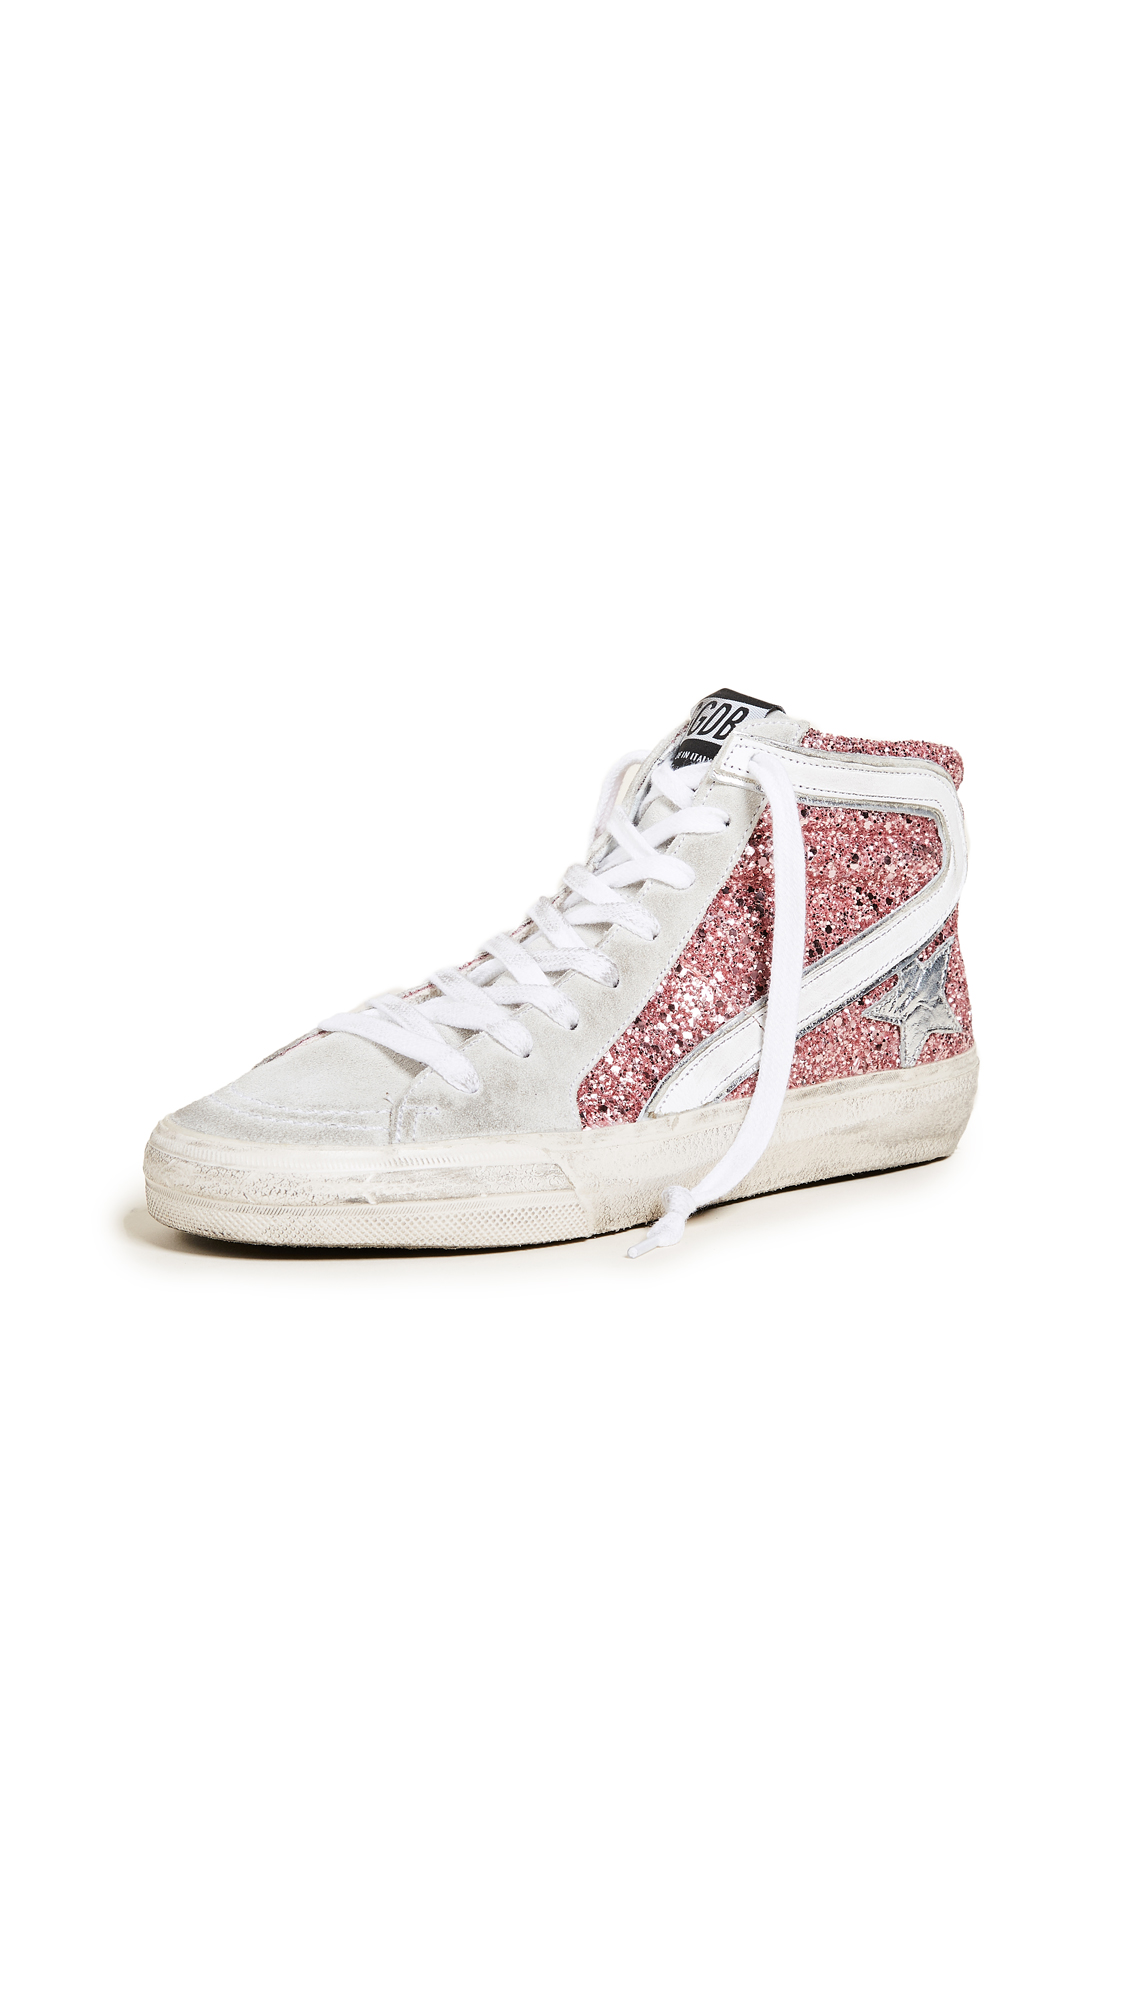 Golden Goose Slide Sneakers - Pink/Ice/White/Silver